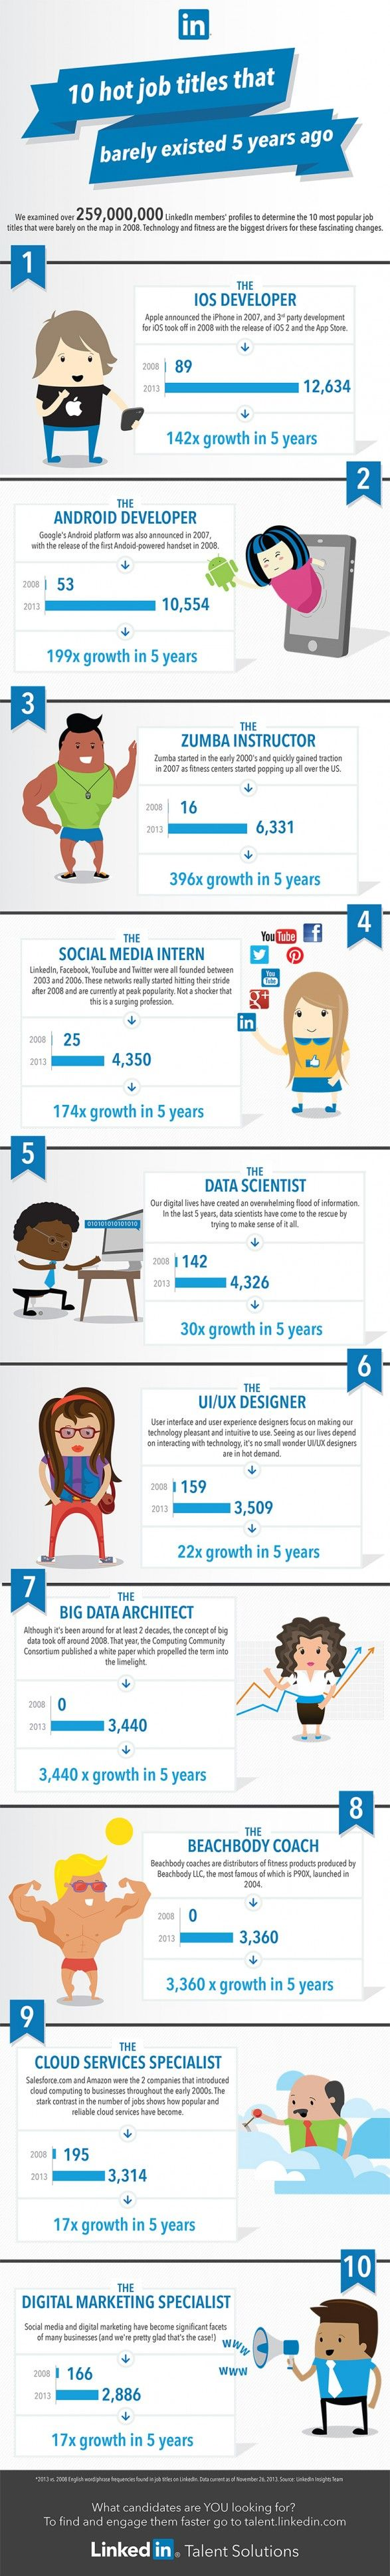 Top 10 Job Titles That Didn't Exist 5 Years Ago